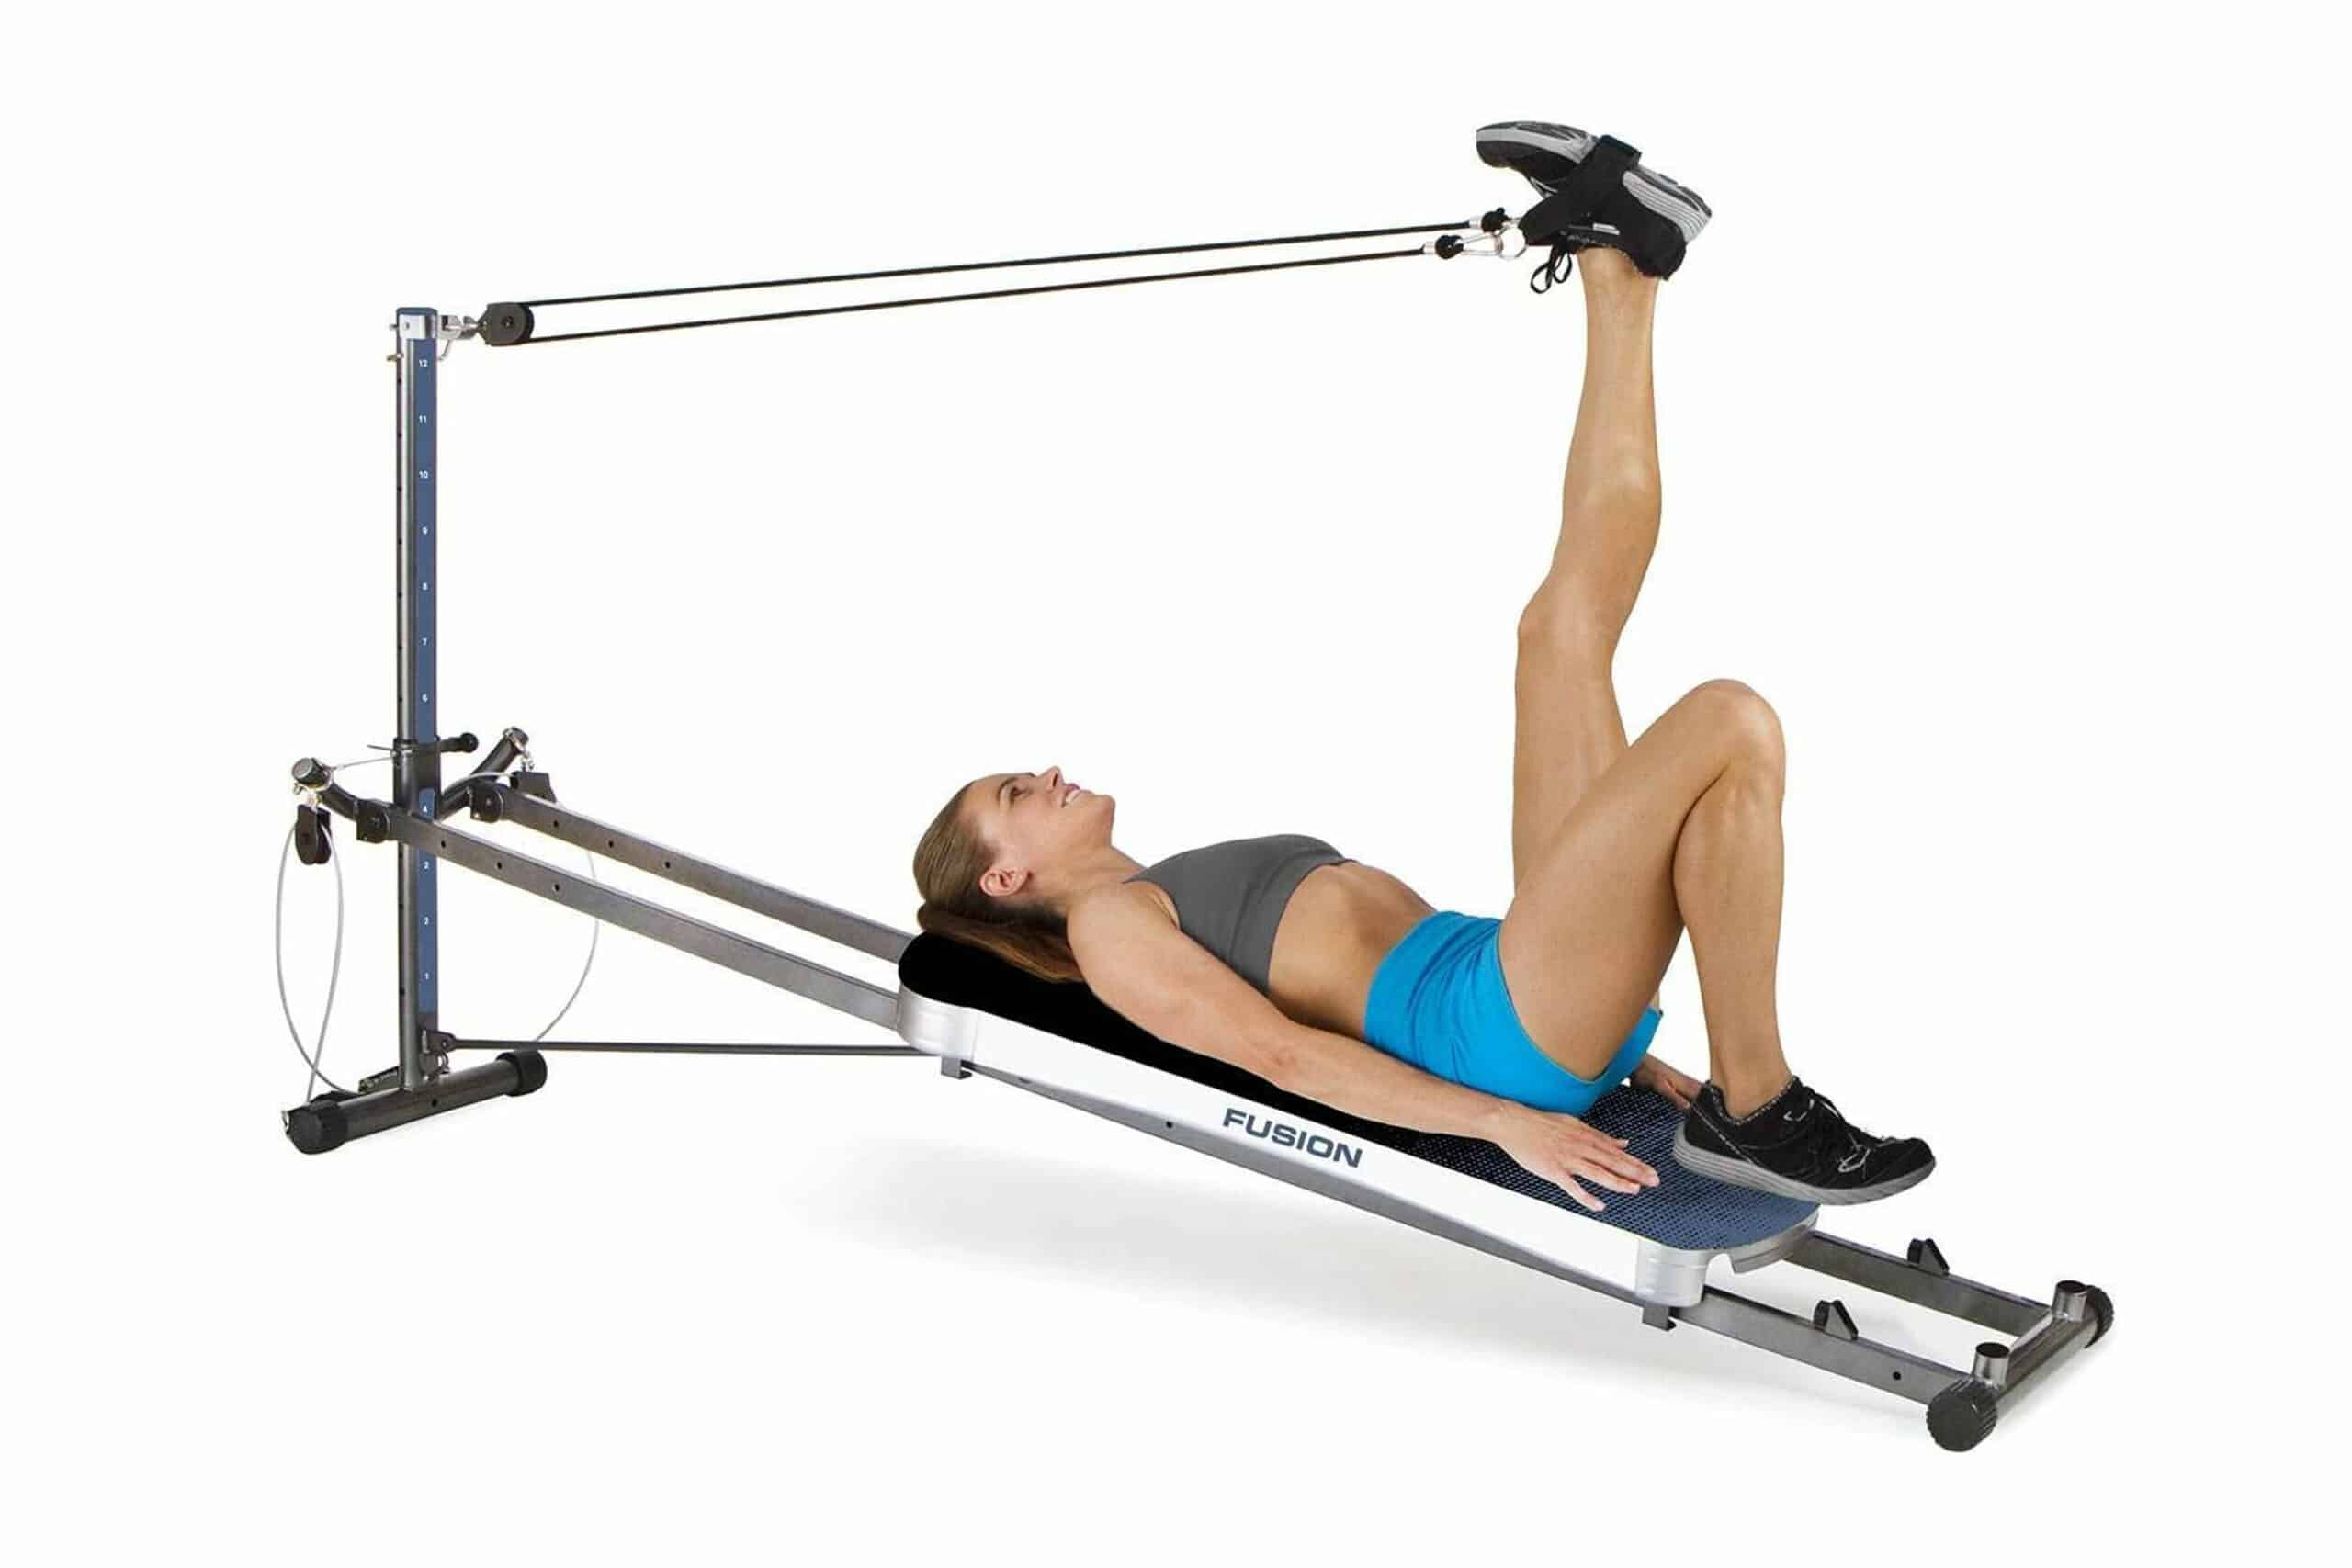 7 Best Total Gyms for Home Use + Buying Guide